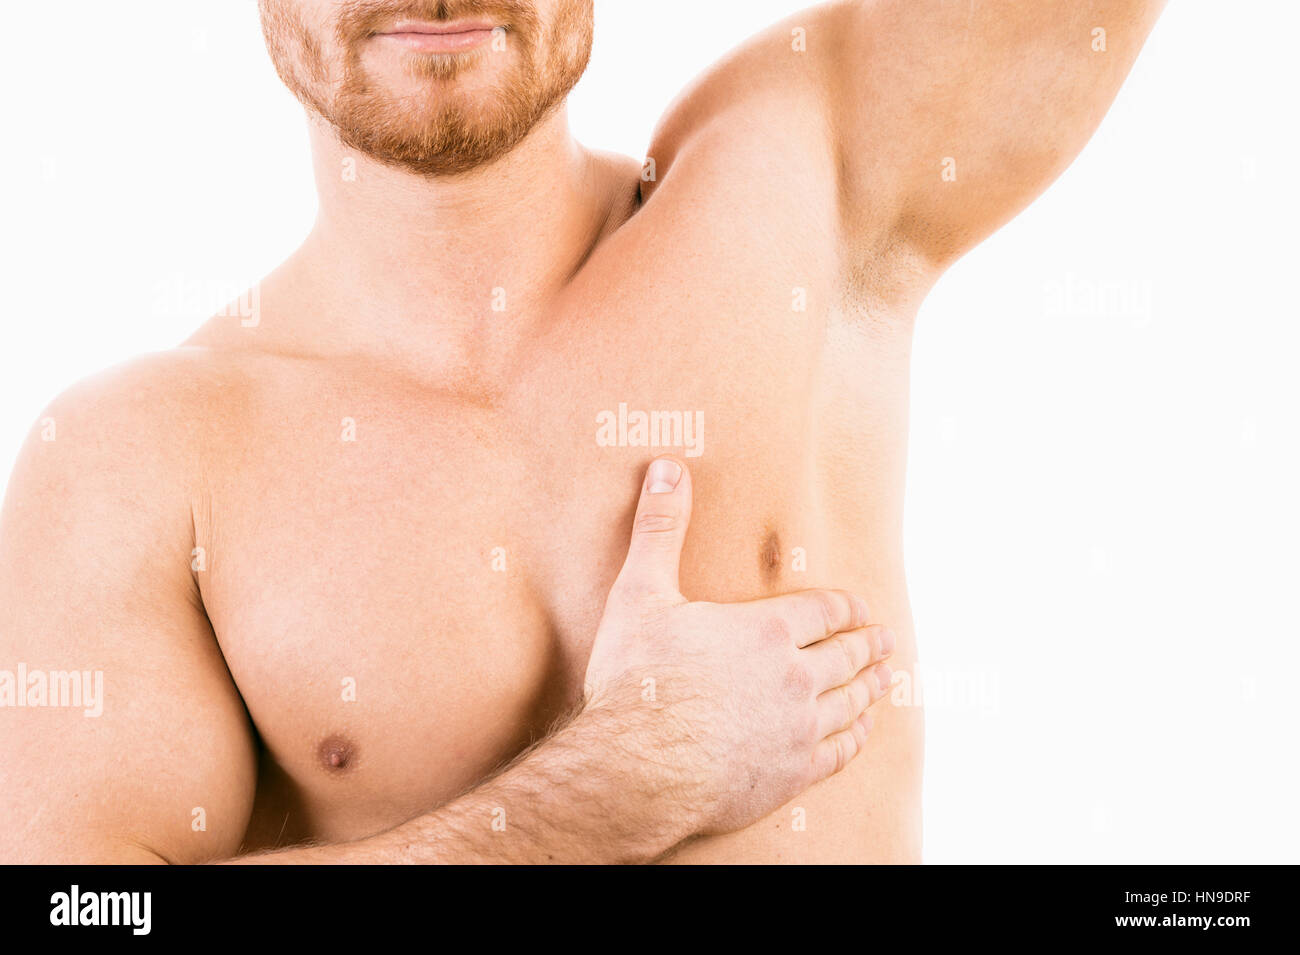 Male torso with focus on armpit - Stock Image